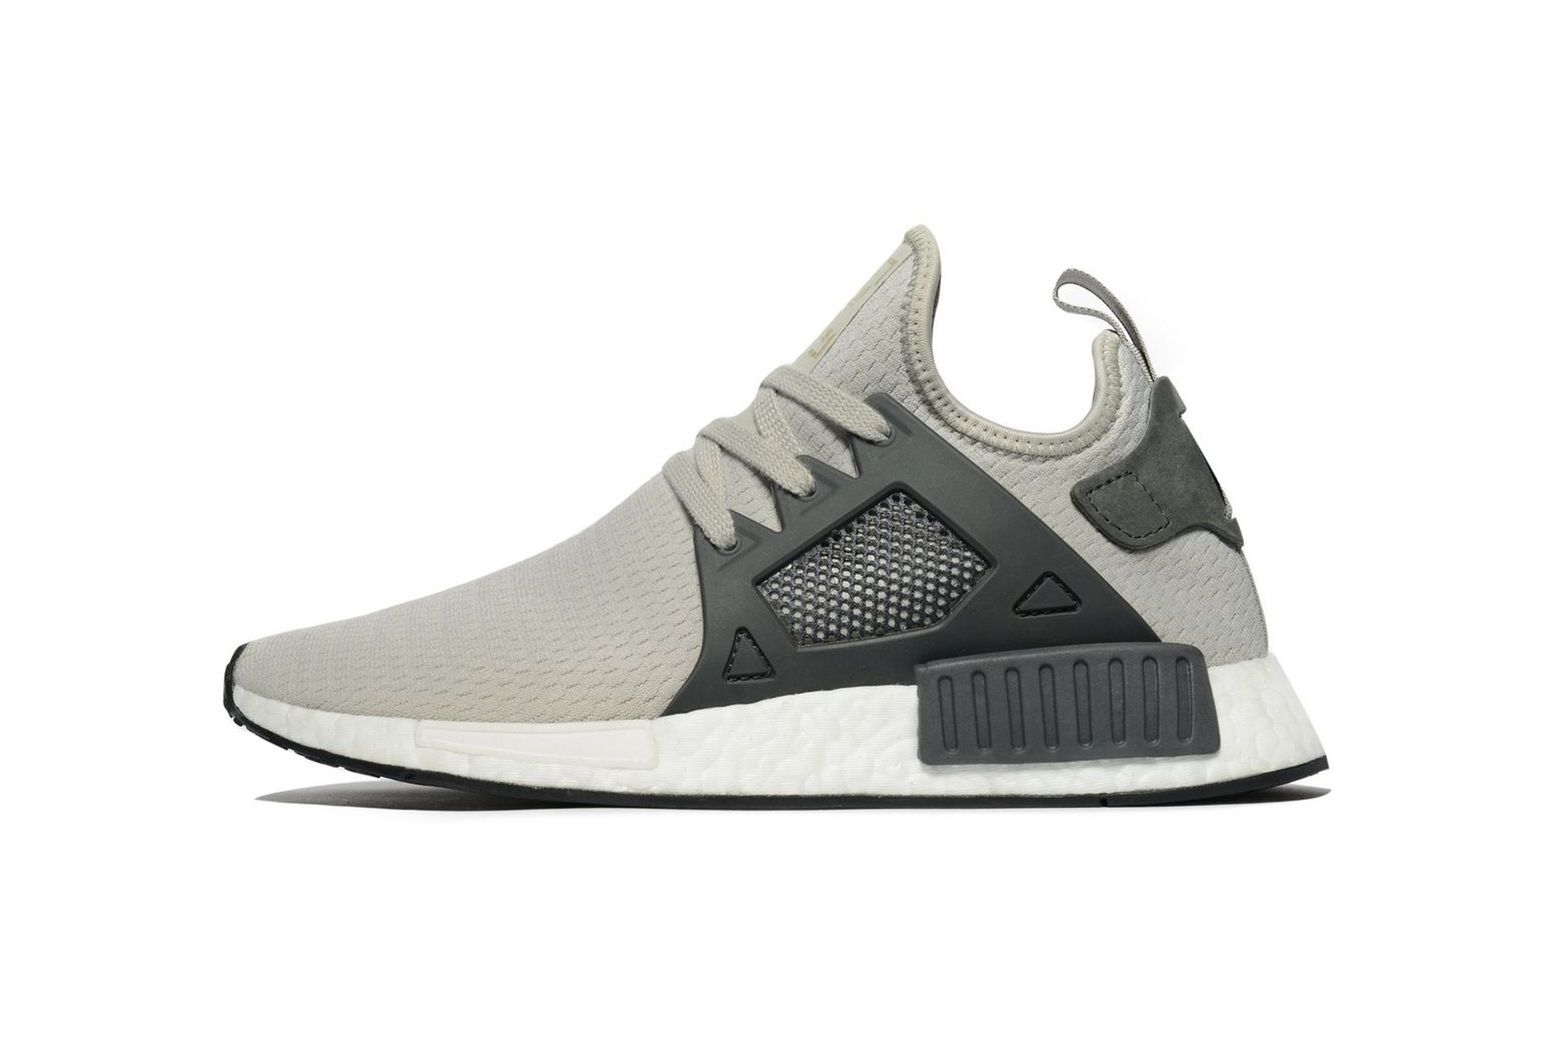 9a43de1dc5c6e adidas Drops a Trio of Exclusive NMD XR1s at JD Sports